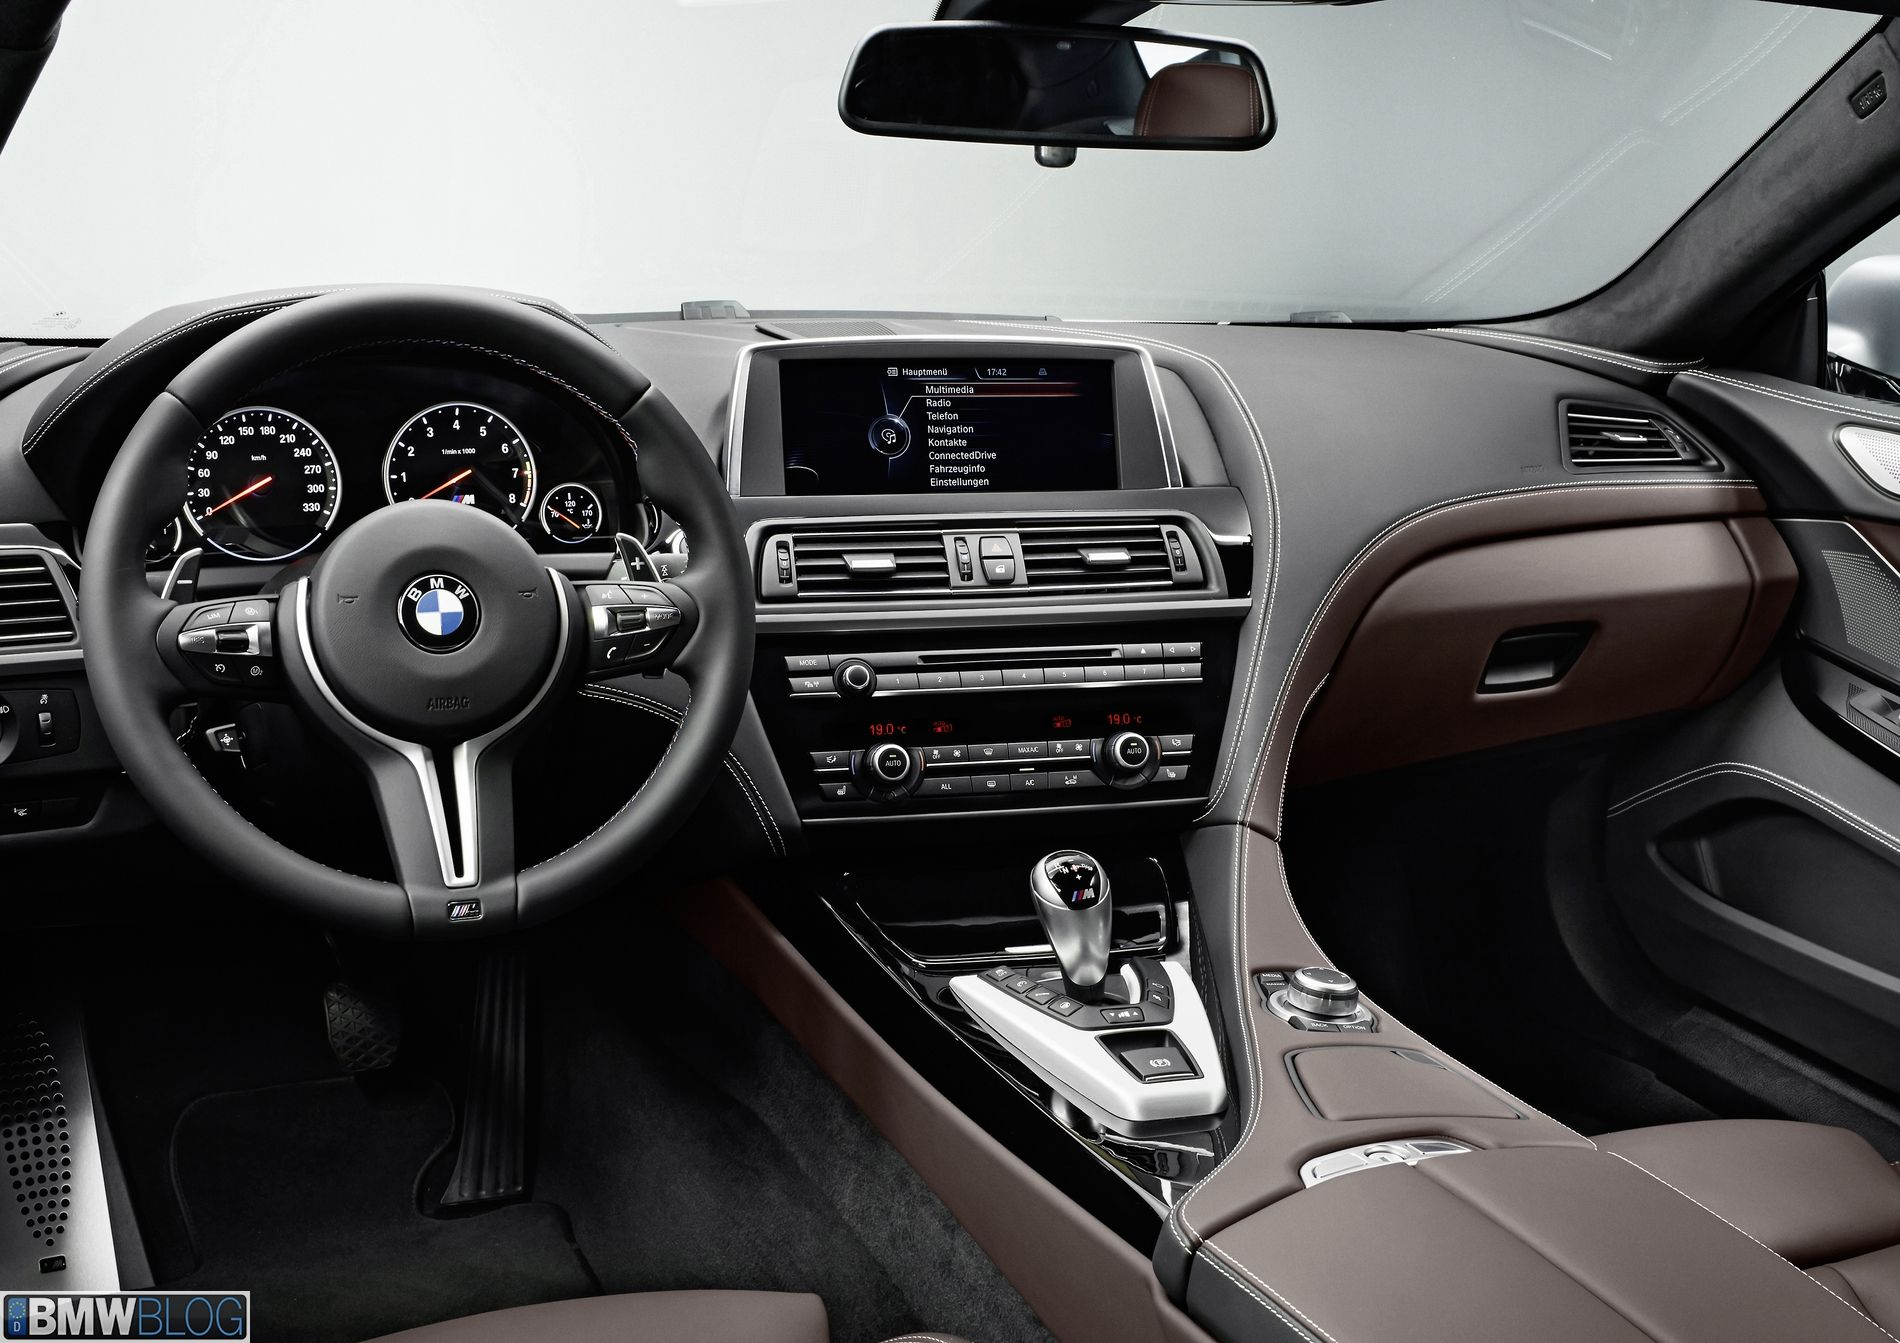 Love That Swoop From The Passenger Side All The Way Down The Middle Console And Black And Brown Is Always Beautiful Bmw M6 Gran Coupe Bmw M6 Gran Coupe Bmw